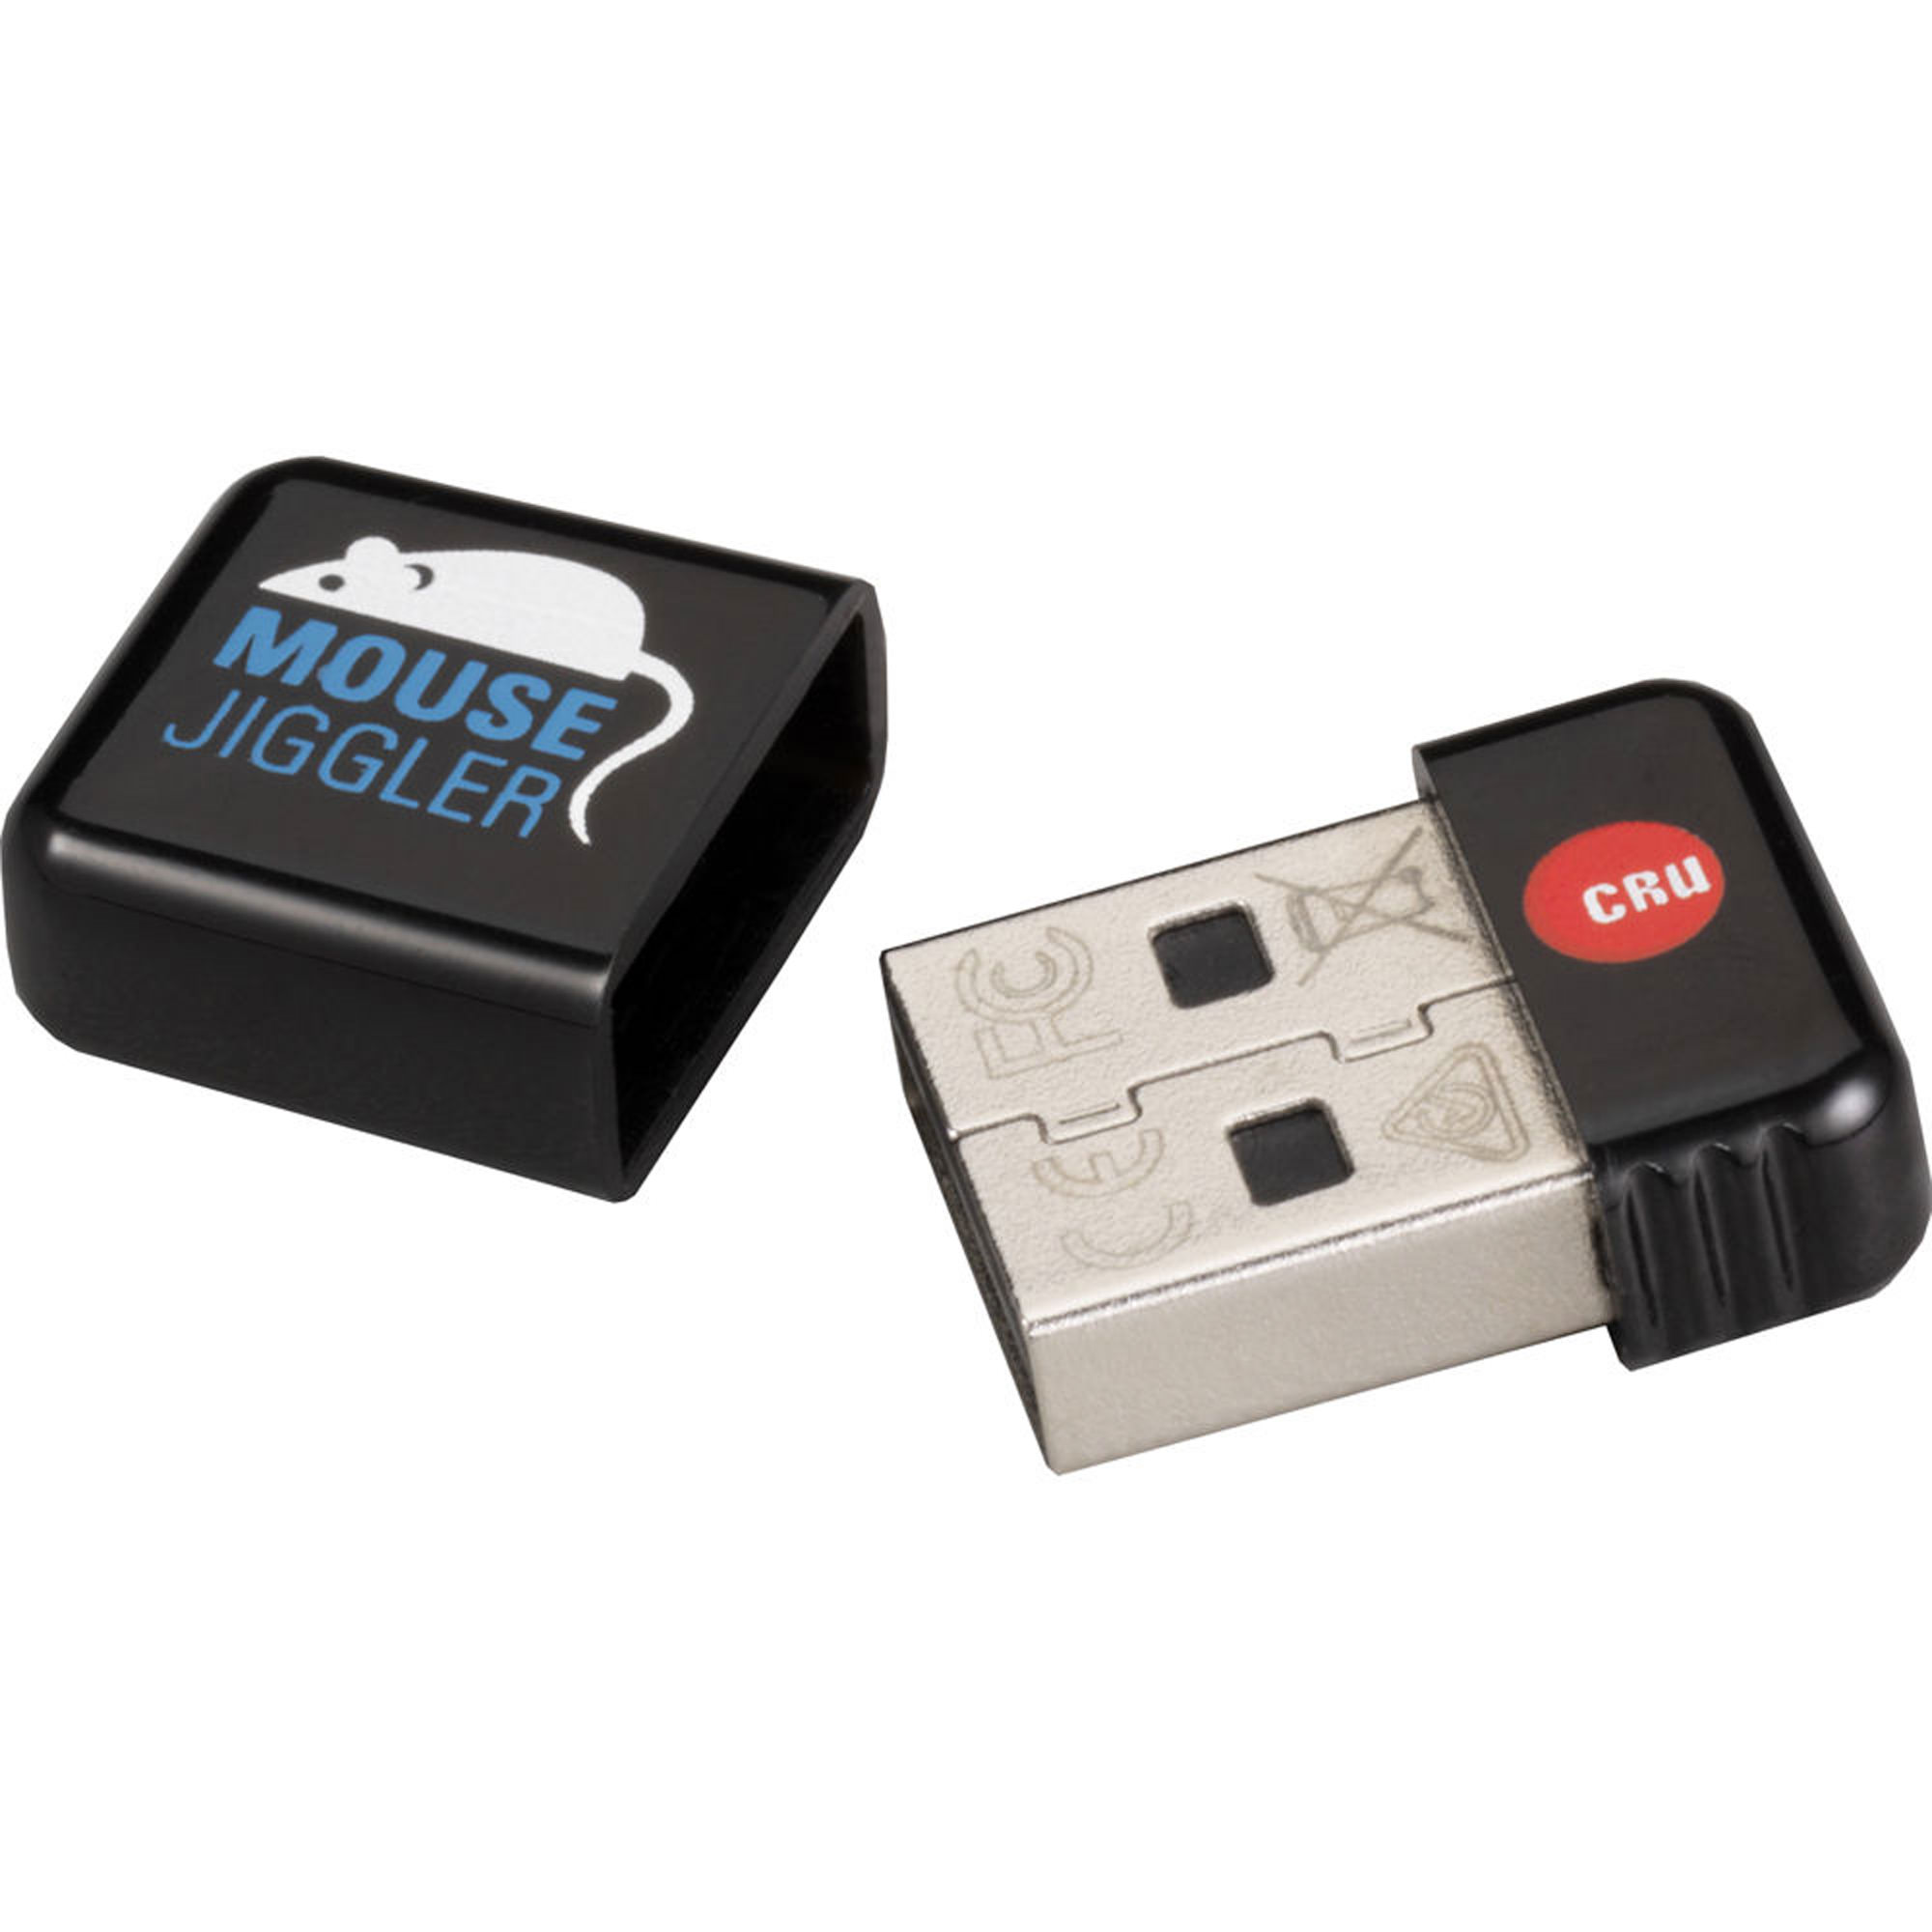 CRU-DataPort Jiggler 30200-0100-0023 10-pack of Mouse Jiggler MJ-3 (automatic mouse activity dongle -- programmable), bulk-packaged